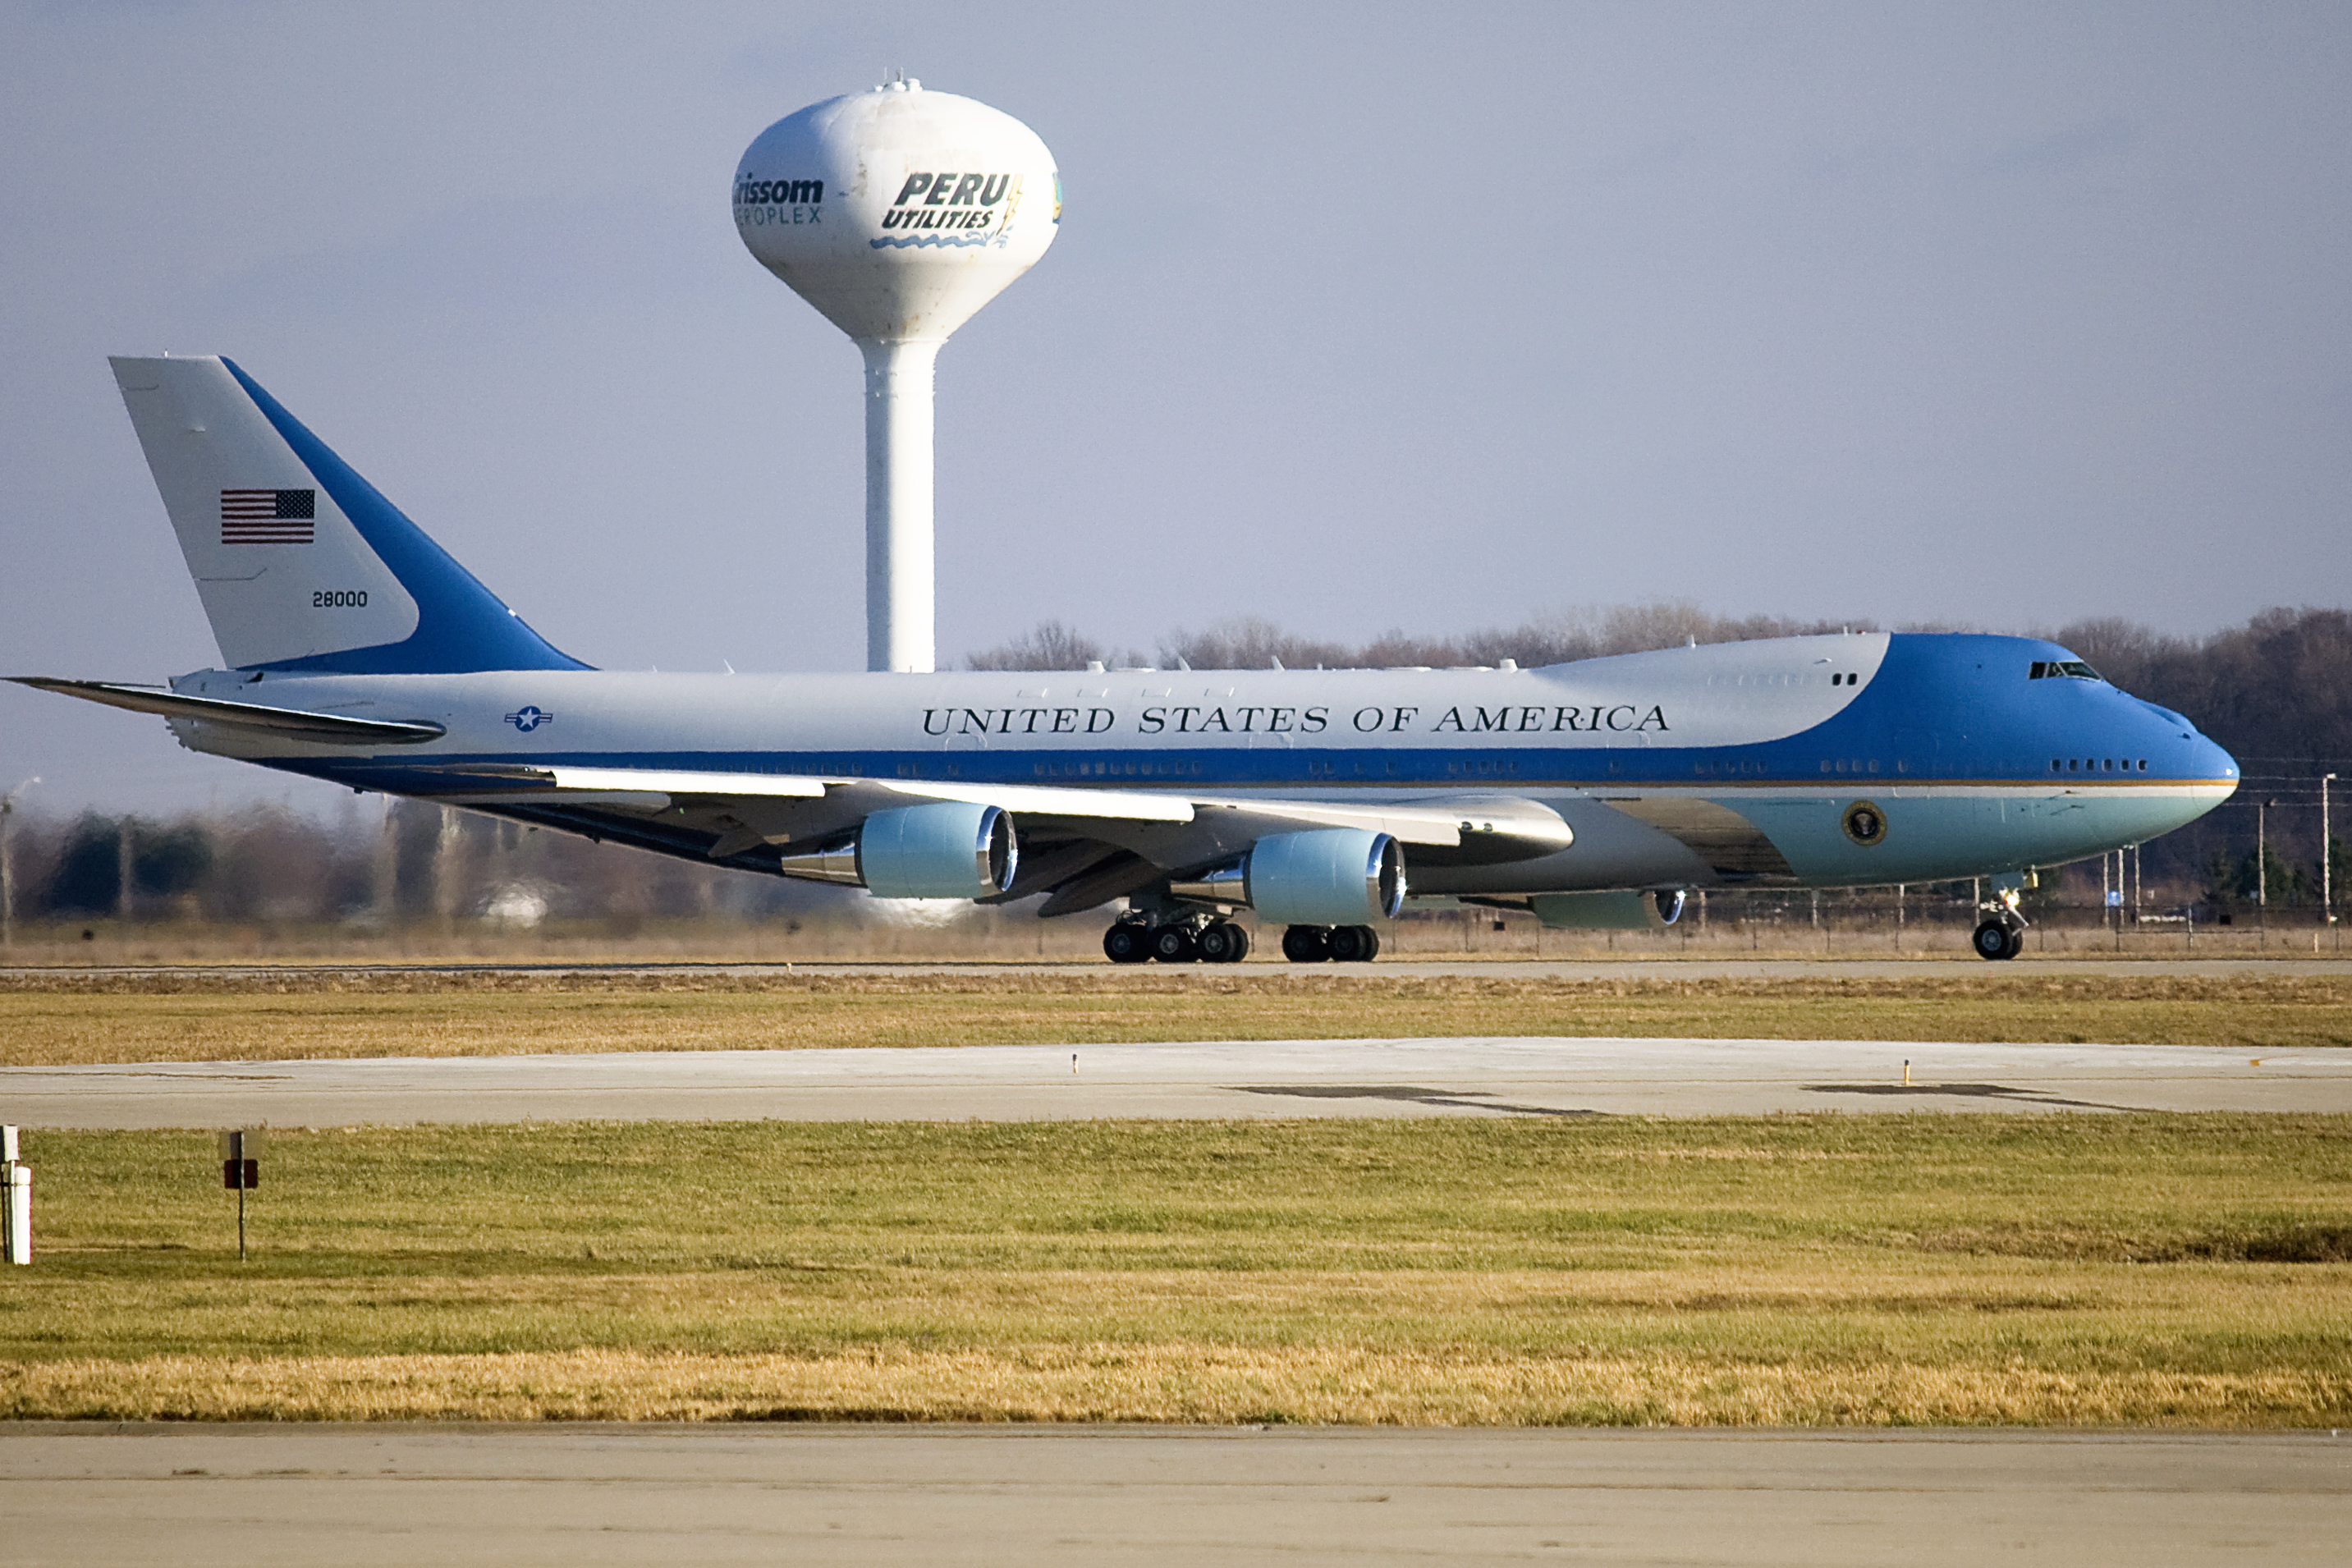 grissom afb jewish dating site Doomsday plane will based in indiana sept 26 revealed the new site would be grissom air force base with a history of reliable reporting dating back to.